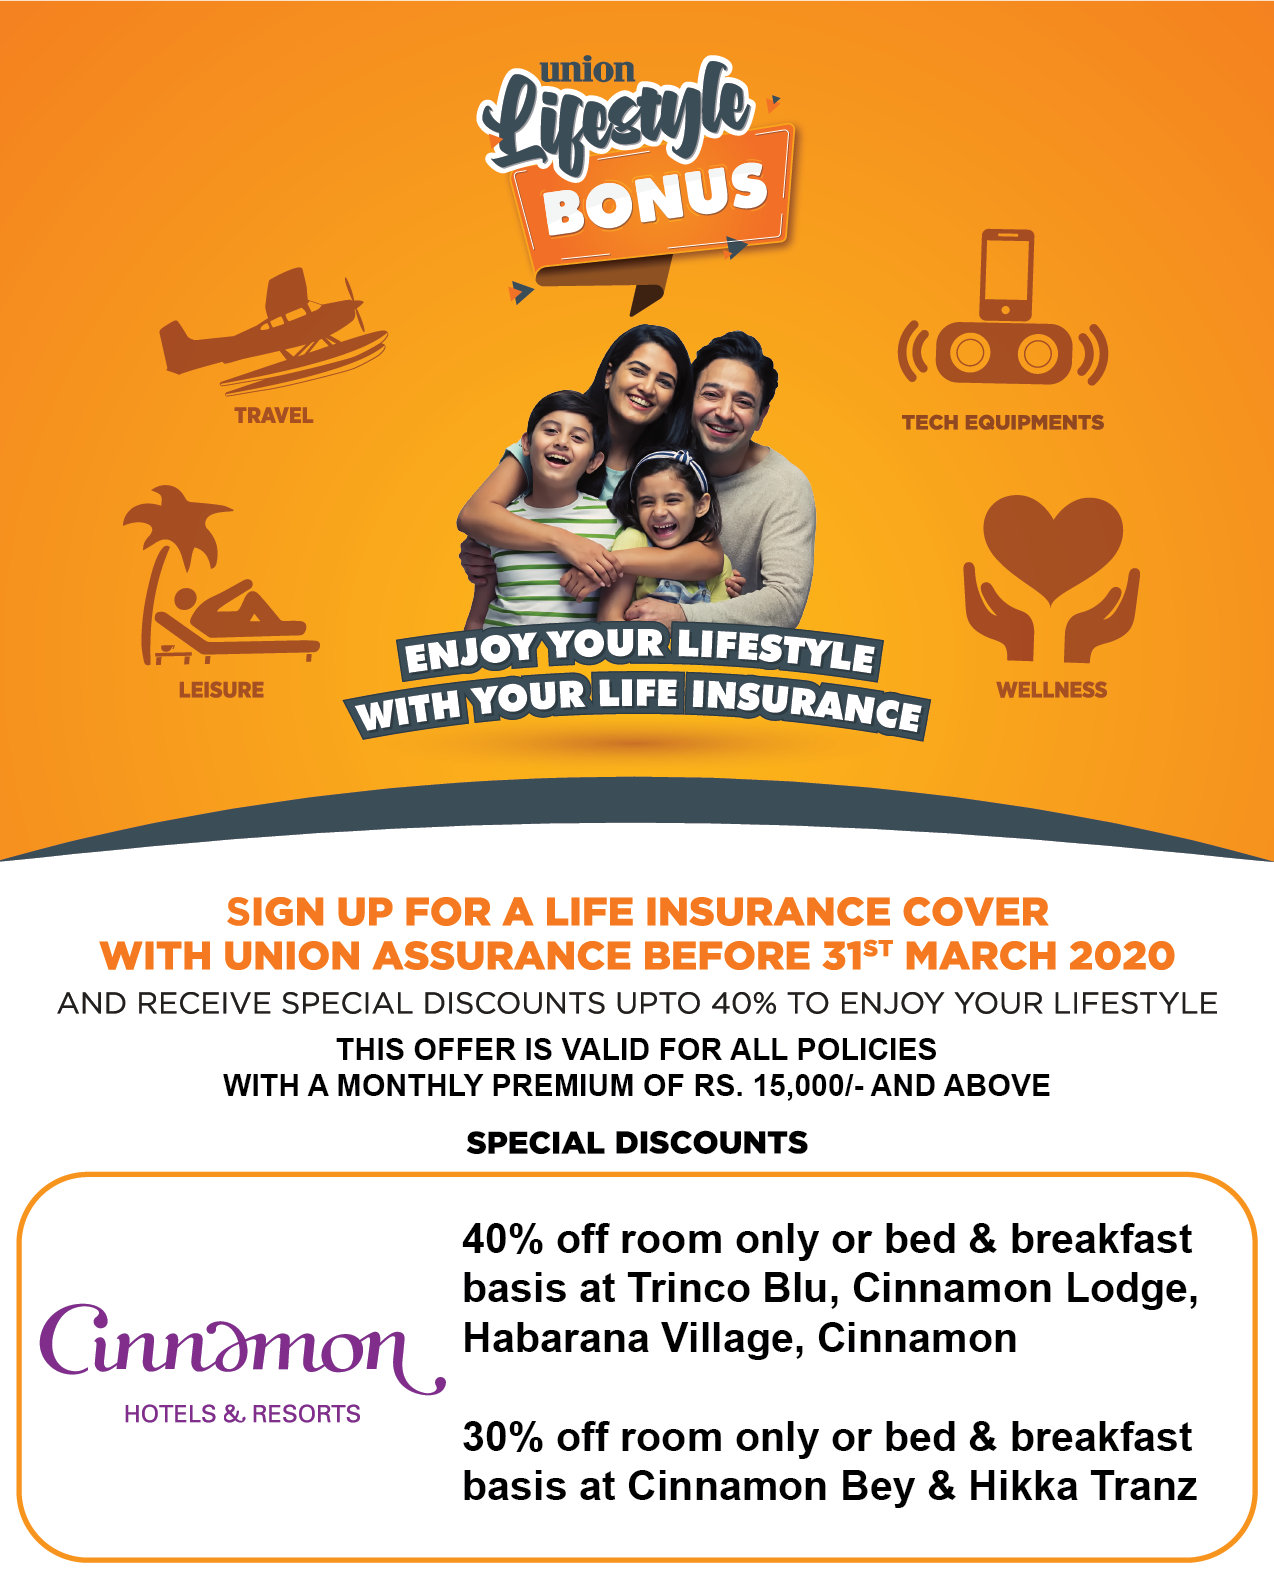 'Union Lifestyle Bonus' Hotel Deals